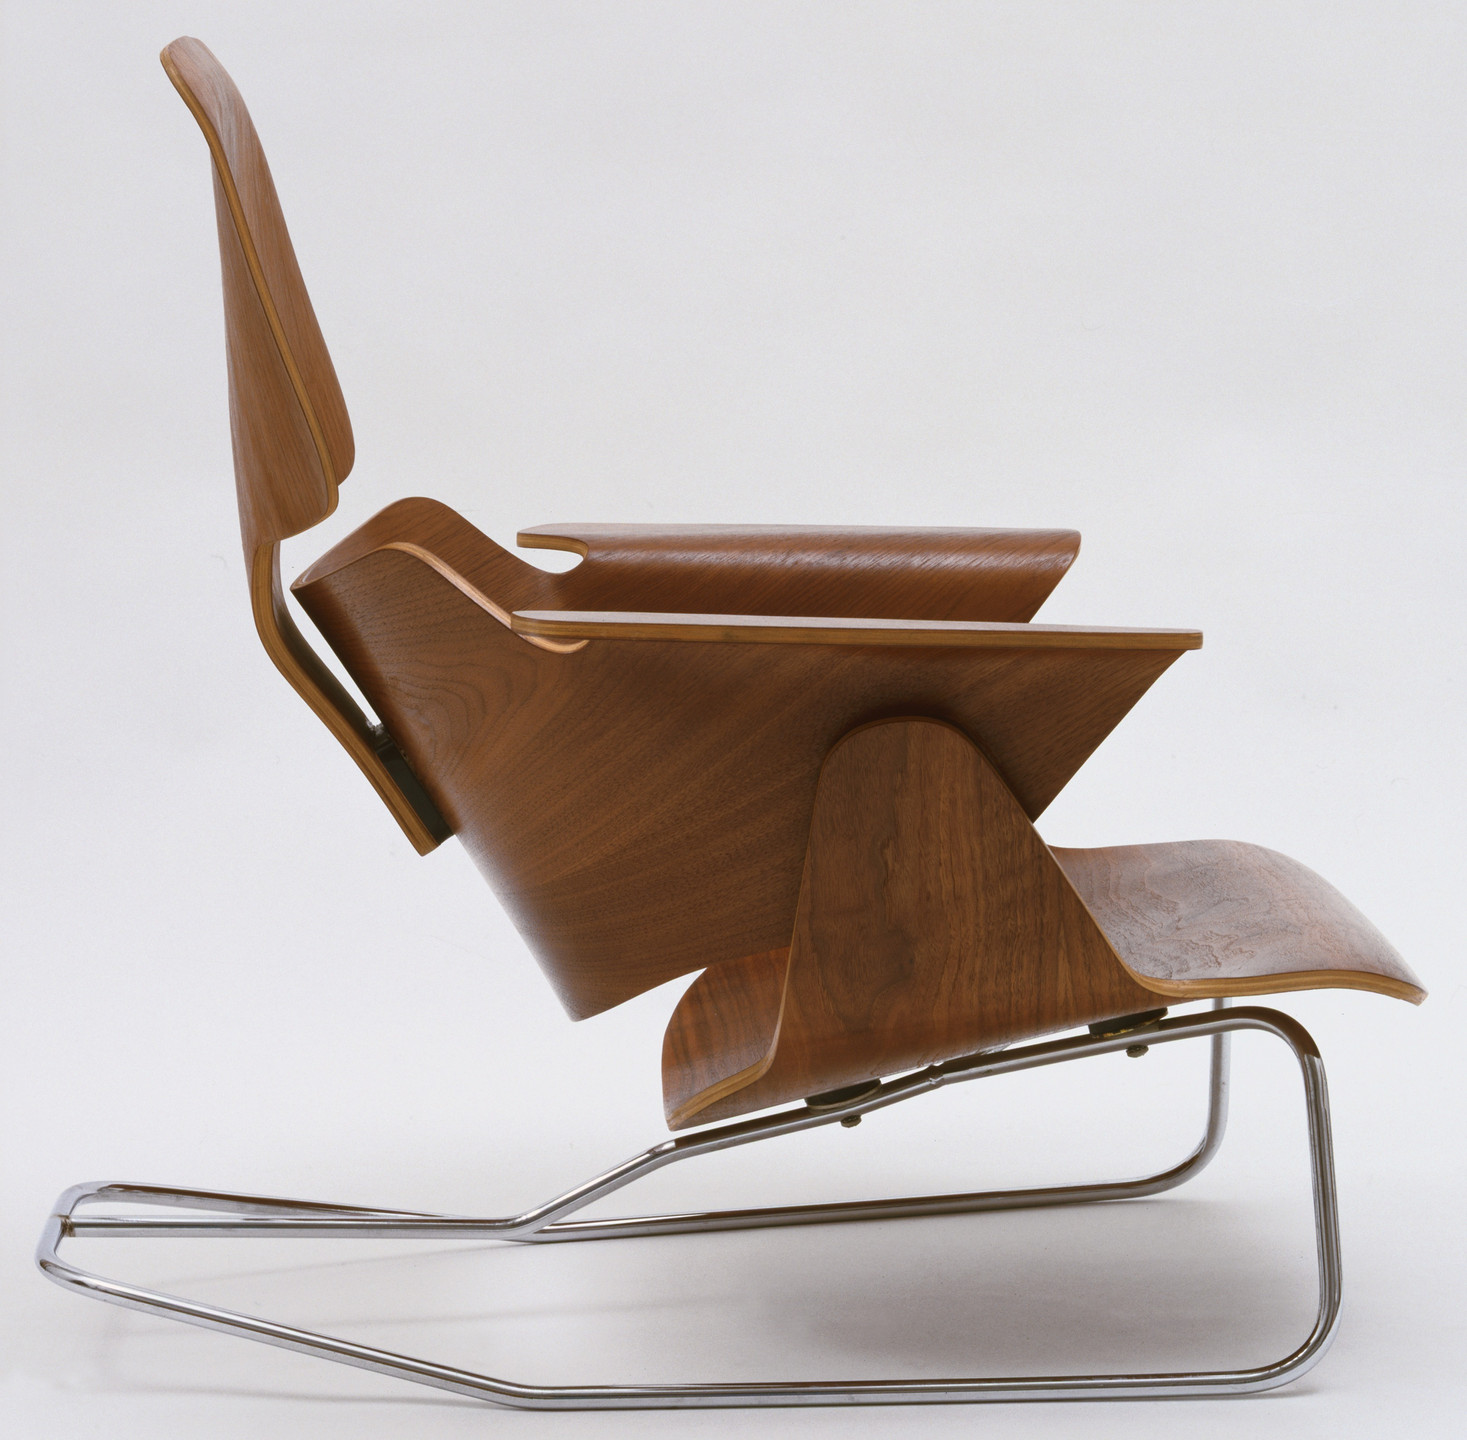 Charles Eames, Ray Eames. Experimental Lounge Chair. c. 1944